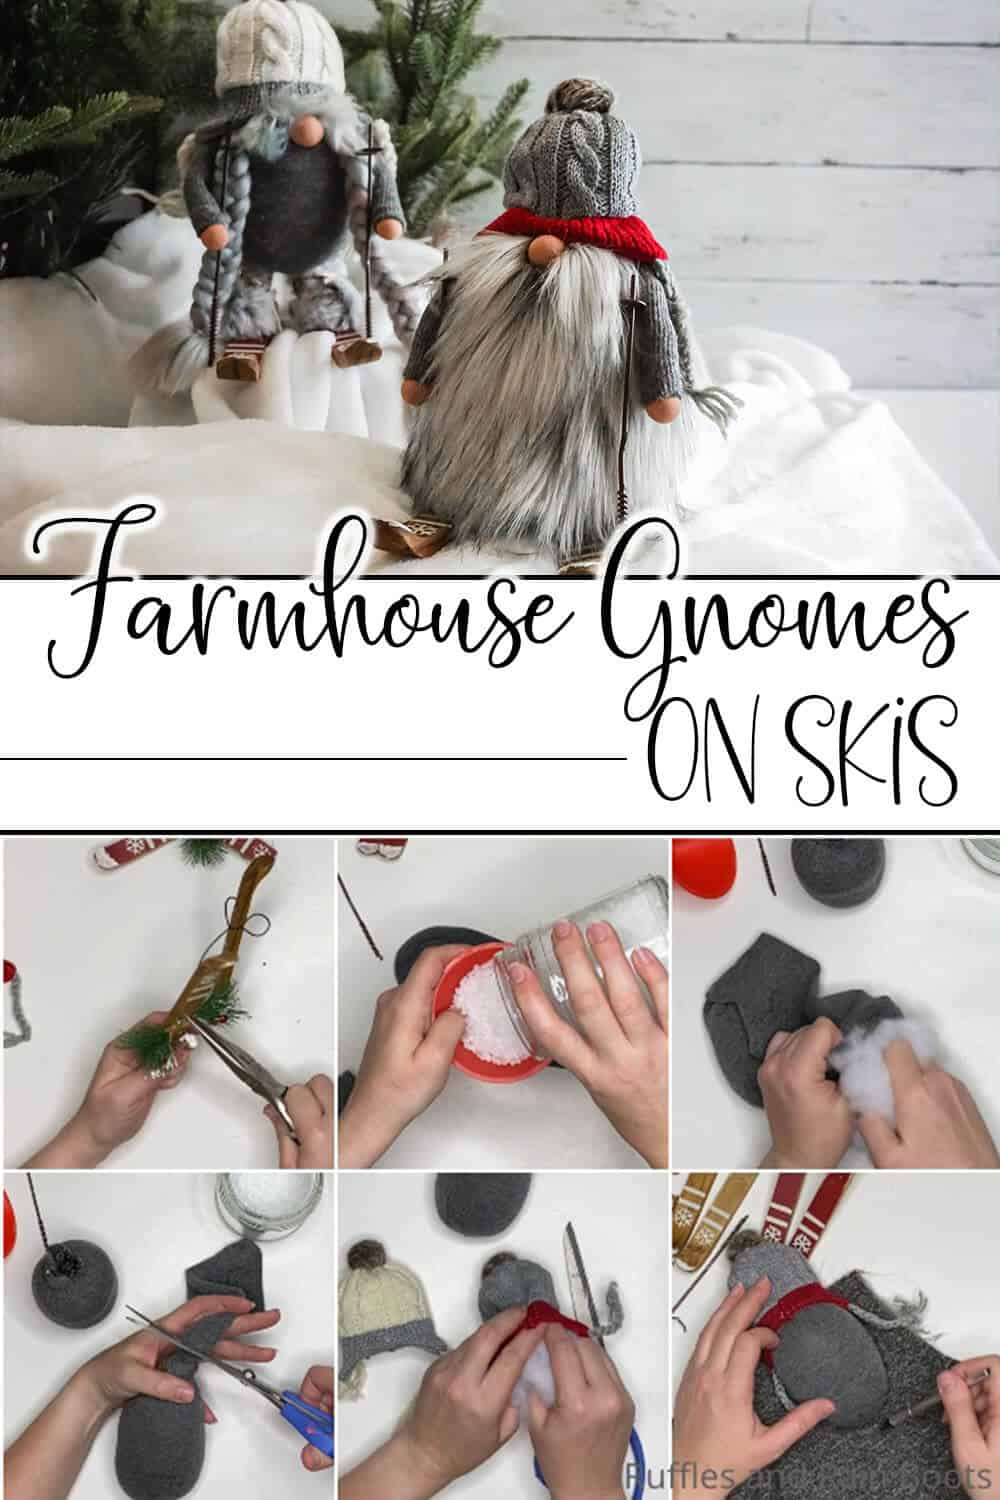 photo collage of farmhouse gnomes on skis with text which reads farmhouse gnomes on skis